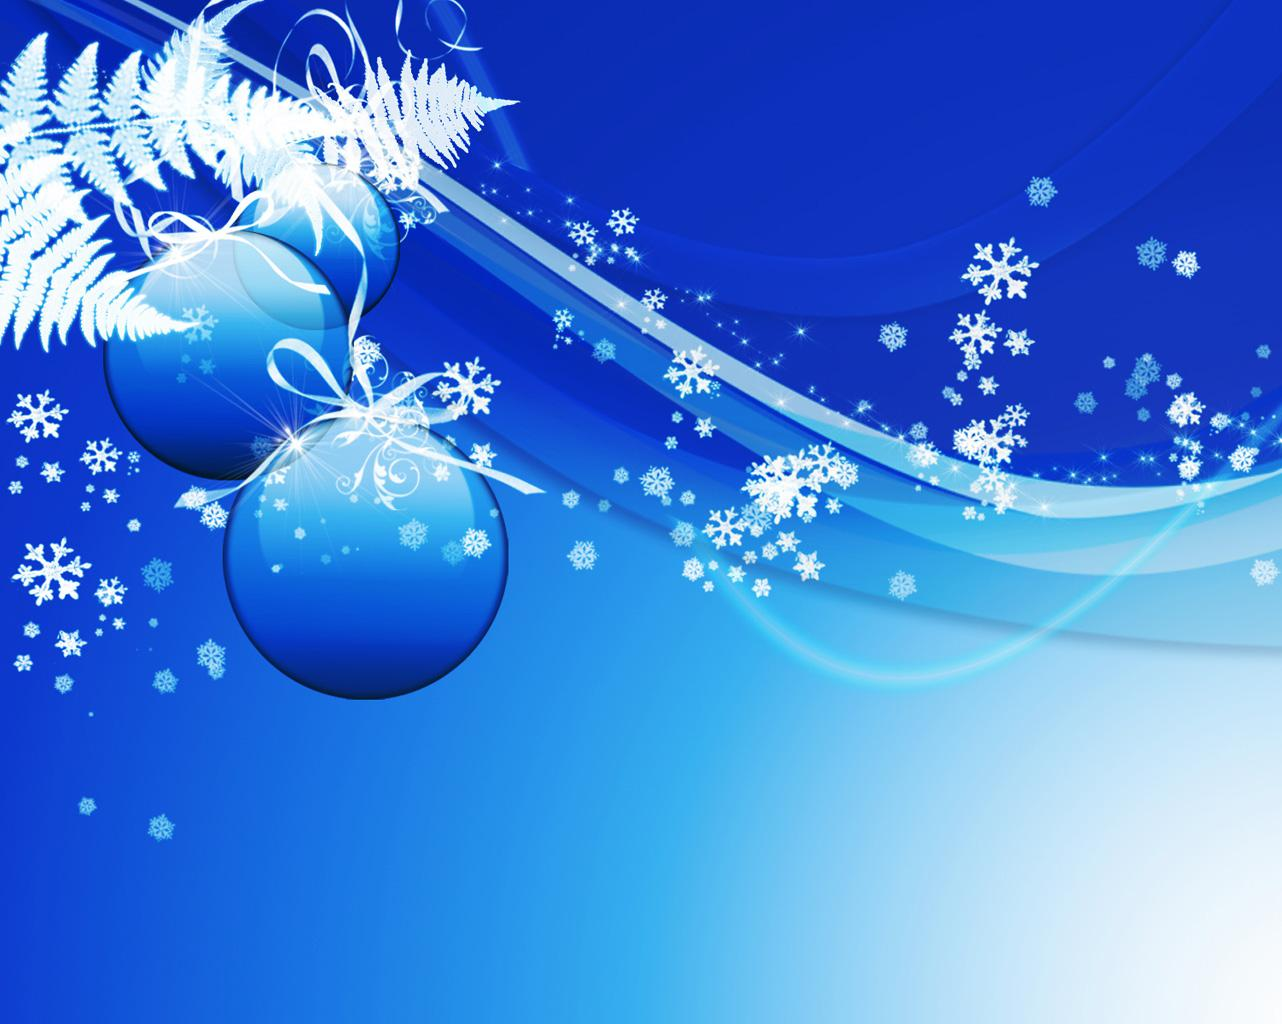 New Year Decorations backgrounds